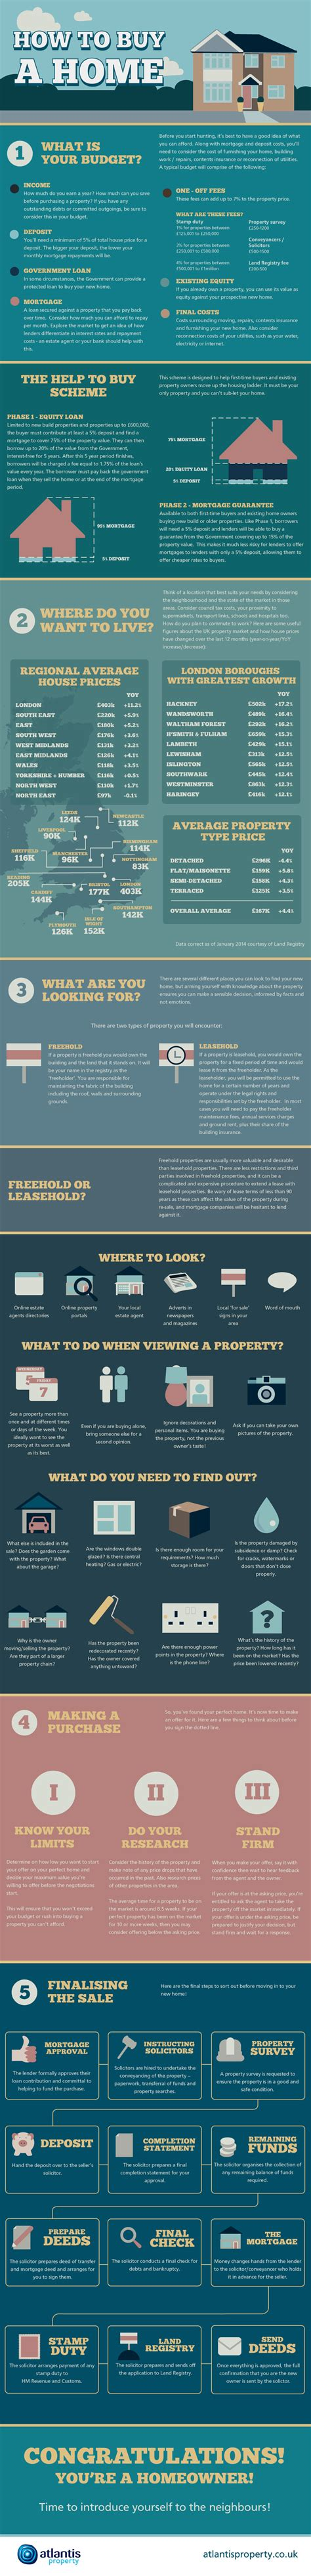 buying a share in a house how to buy a home infographic visualistan